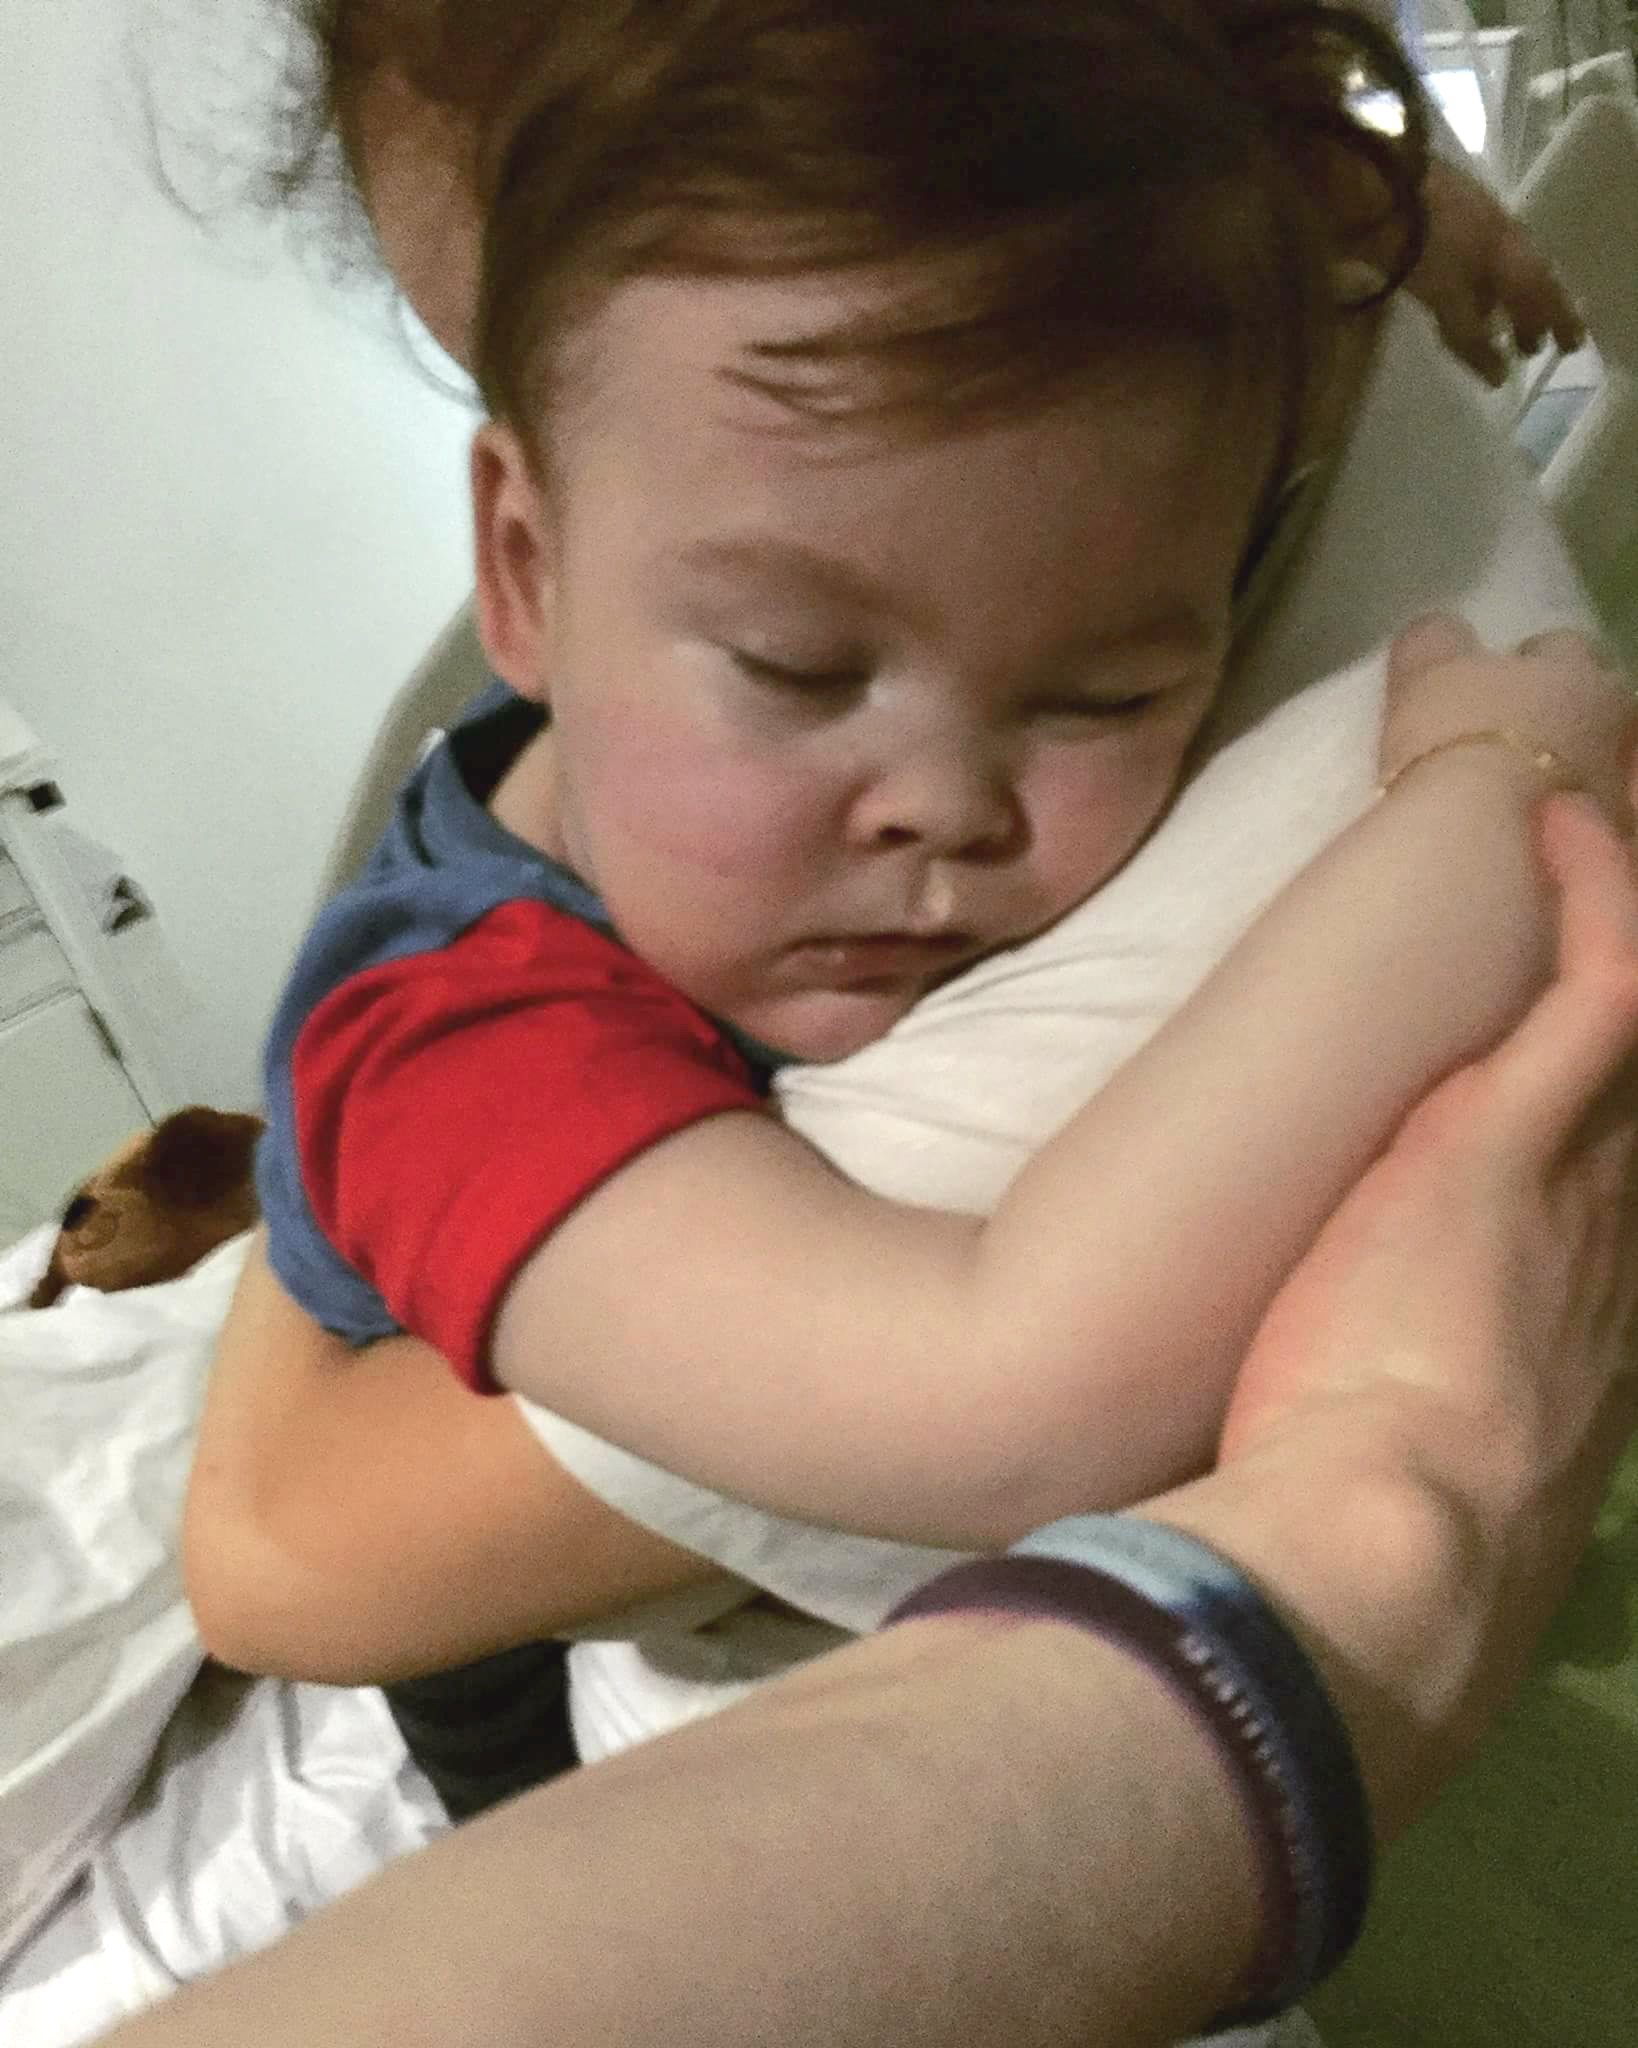 """Family handout photo dated 23/04/18 supplied by the Alfies Army Official facebook page of brain-damaged boy Alfie Evans cuddling his mother Kate James at Alder Hey Hospital, Liverpool. PRESS ASSOCIATION Photo. Issue date: Tuesday April 24, 2018. Doctors have been left """"gobsmacked"""" after Alfie's life-support was withdrawn but he continued to live, his father Tom Evans has said. See PA story COURTS Alfie. Photo credit should read: Alfies Army Official/PA Wire NOTE TO EDITORS: This handout photo may only be used in for editorial reporting purposes for the contemporaneous illustration of events, things or the people in the image or facts mentioned in the caption. Reuse of the picture may require further permission from the copyright holder."""